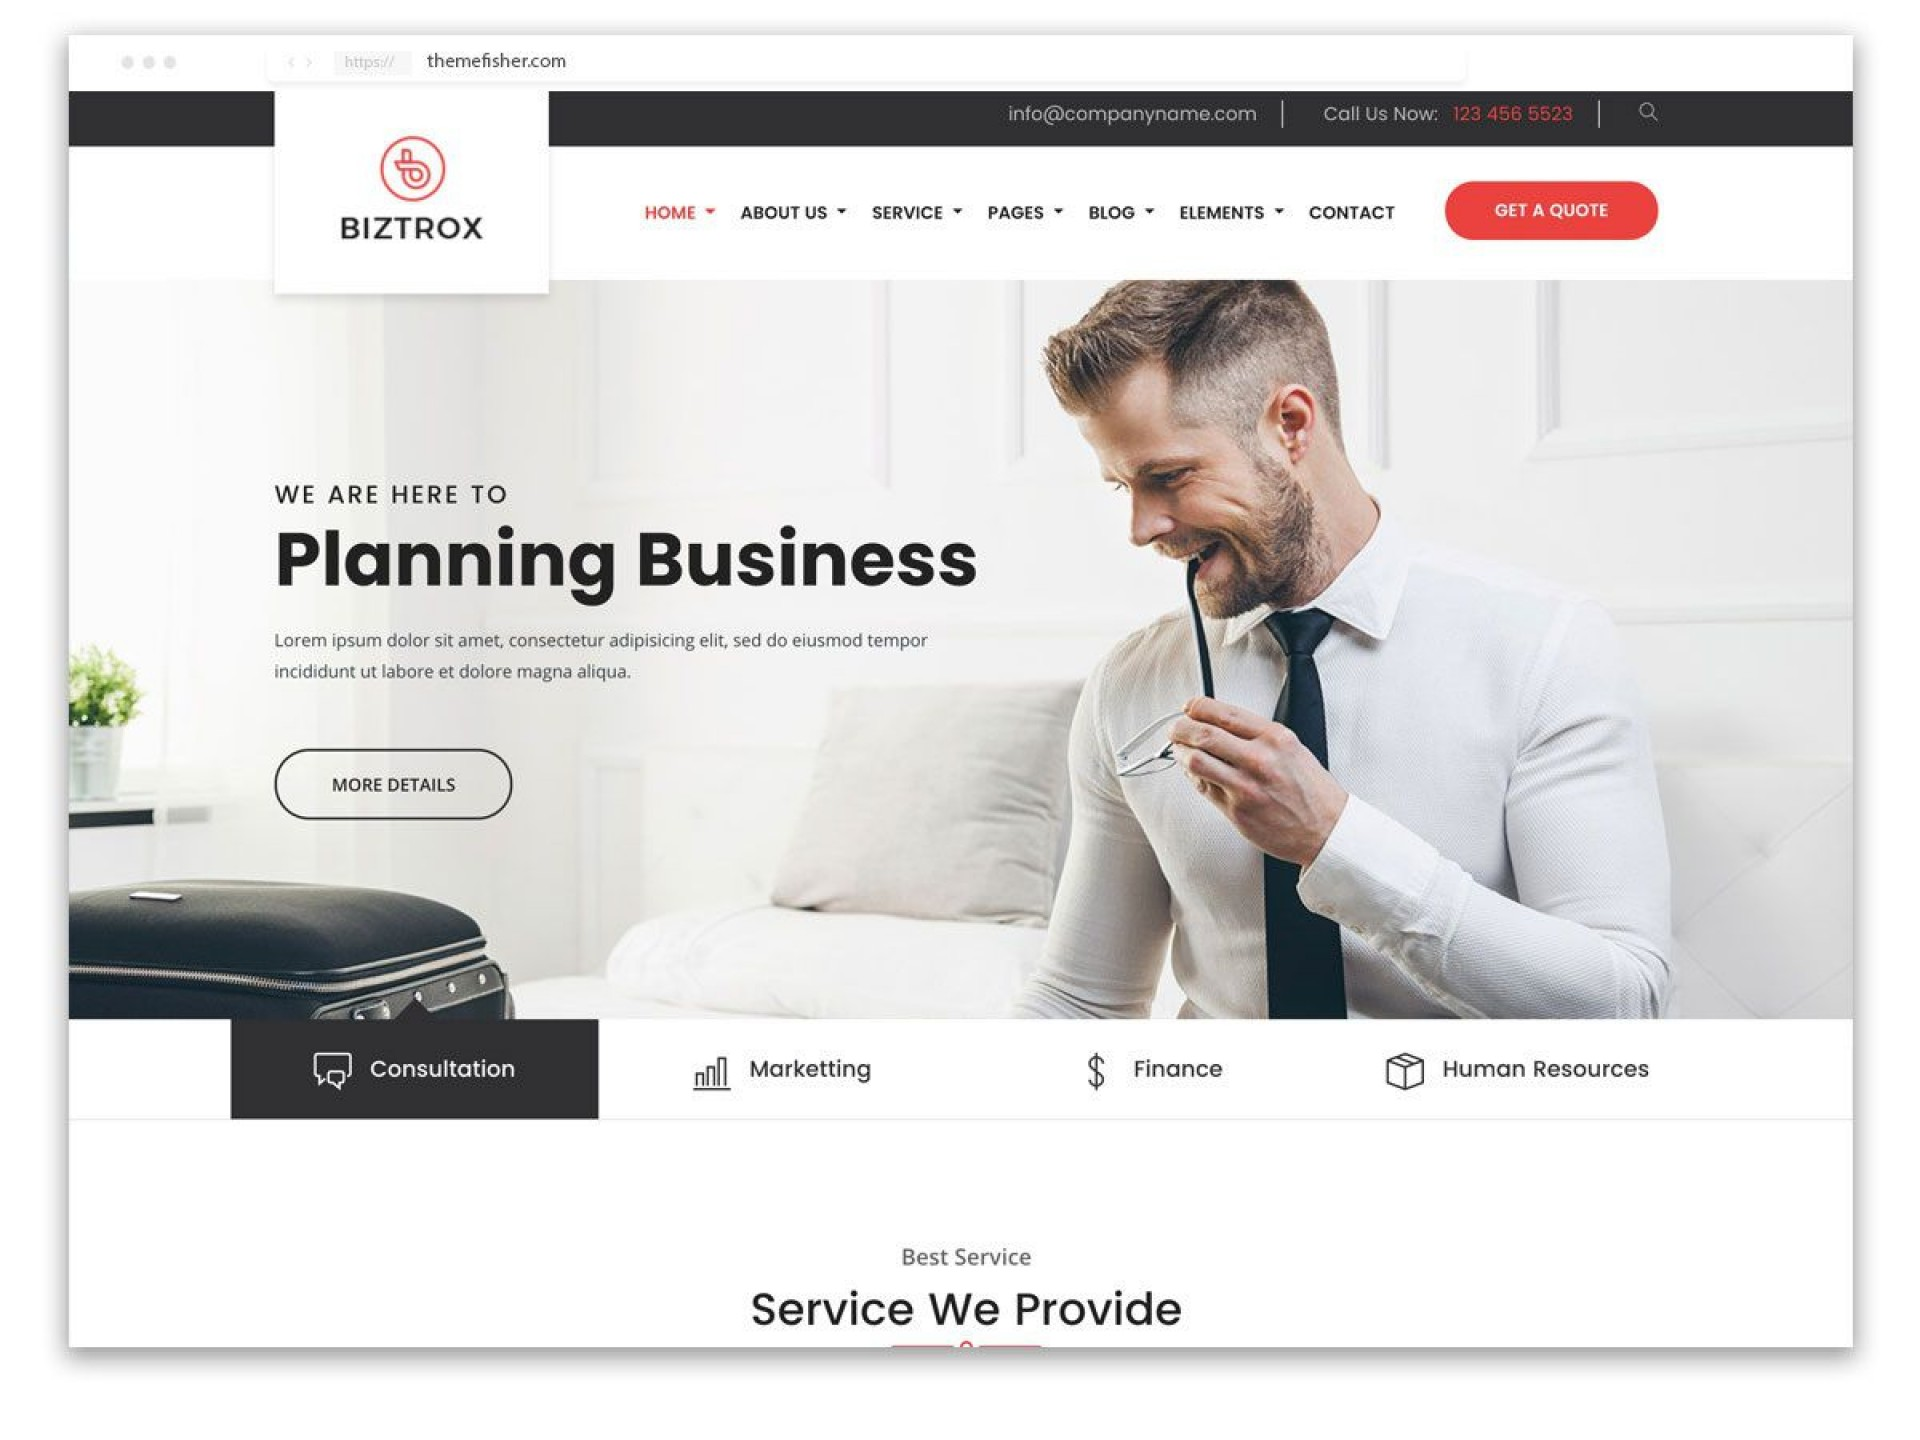 001 Astounding Download Web Template Html5 Inspiration  Photography Website Free Logistic Busines1920